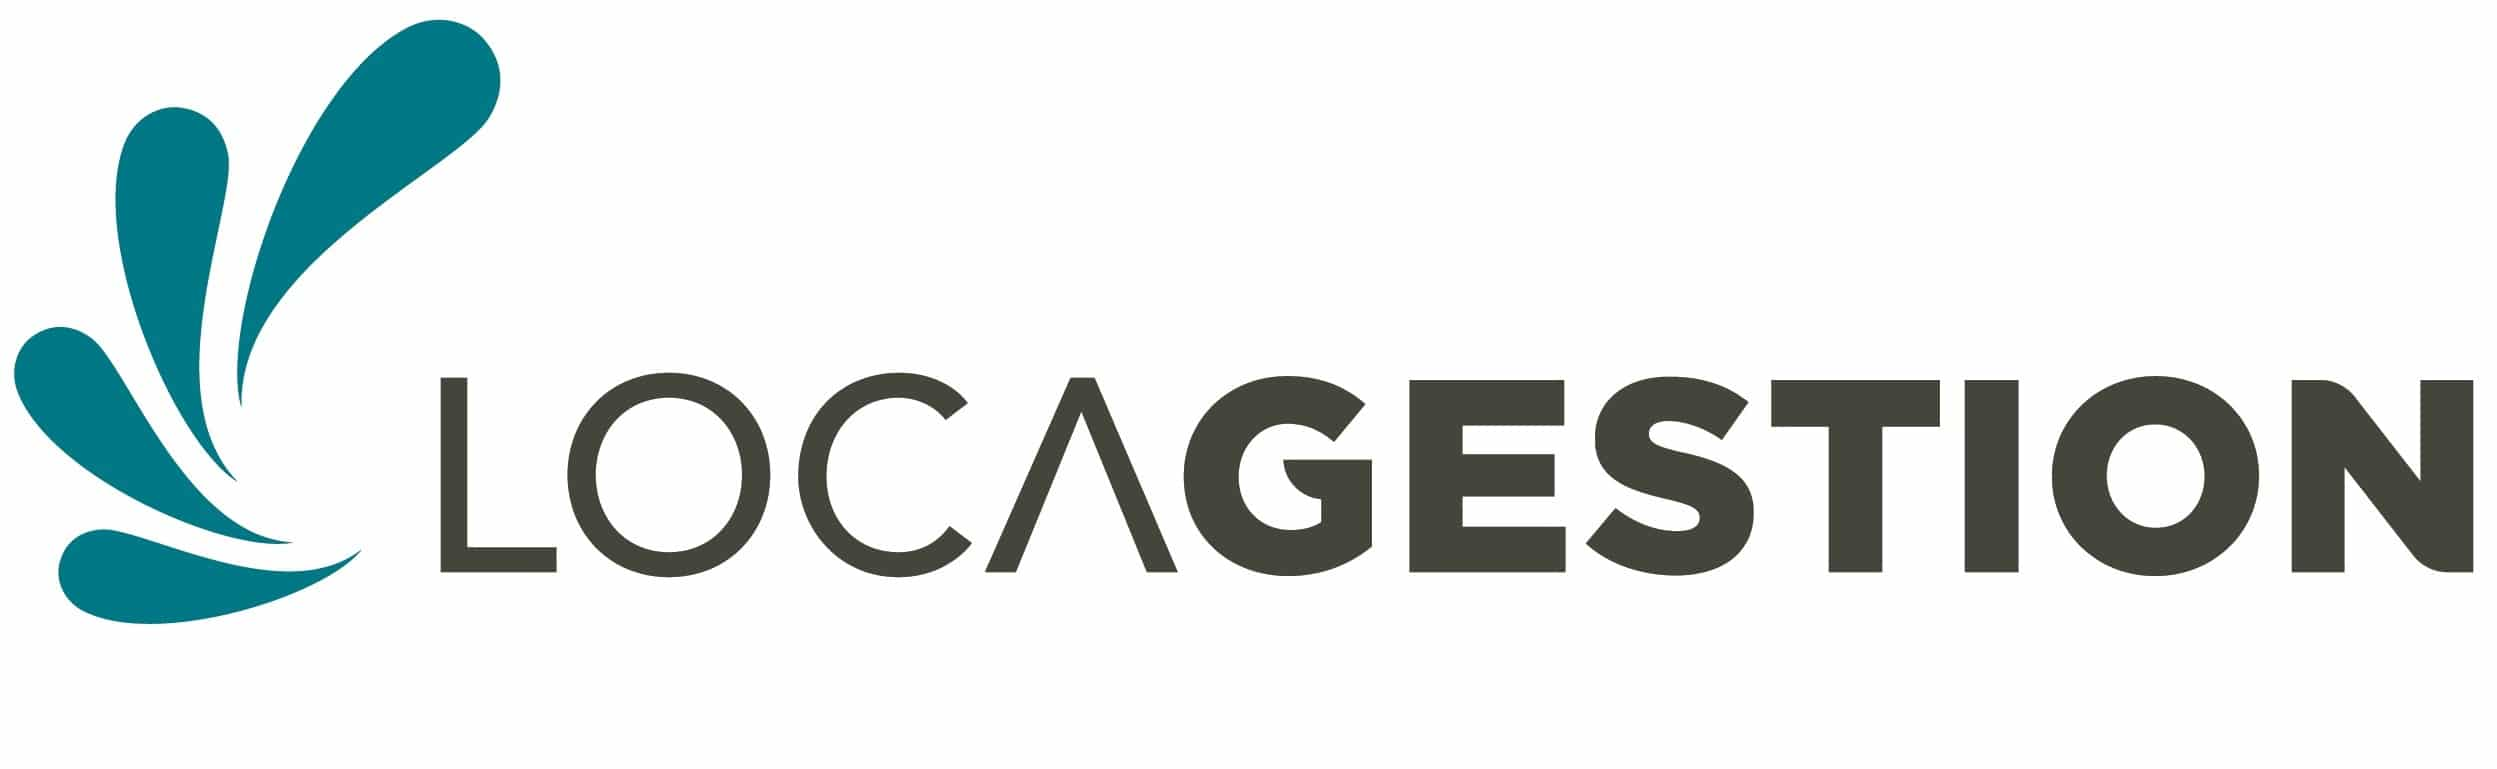 Locagestion logo - agence immobiliere - GMAO Bob Desk